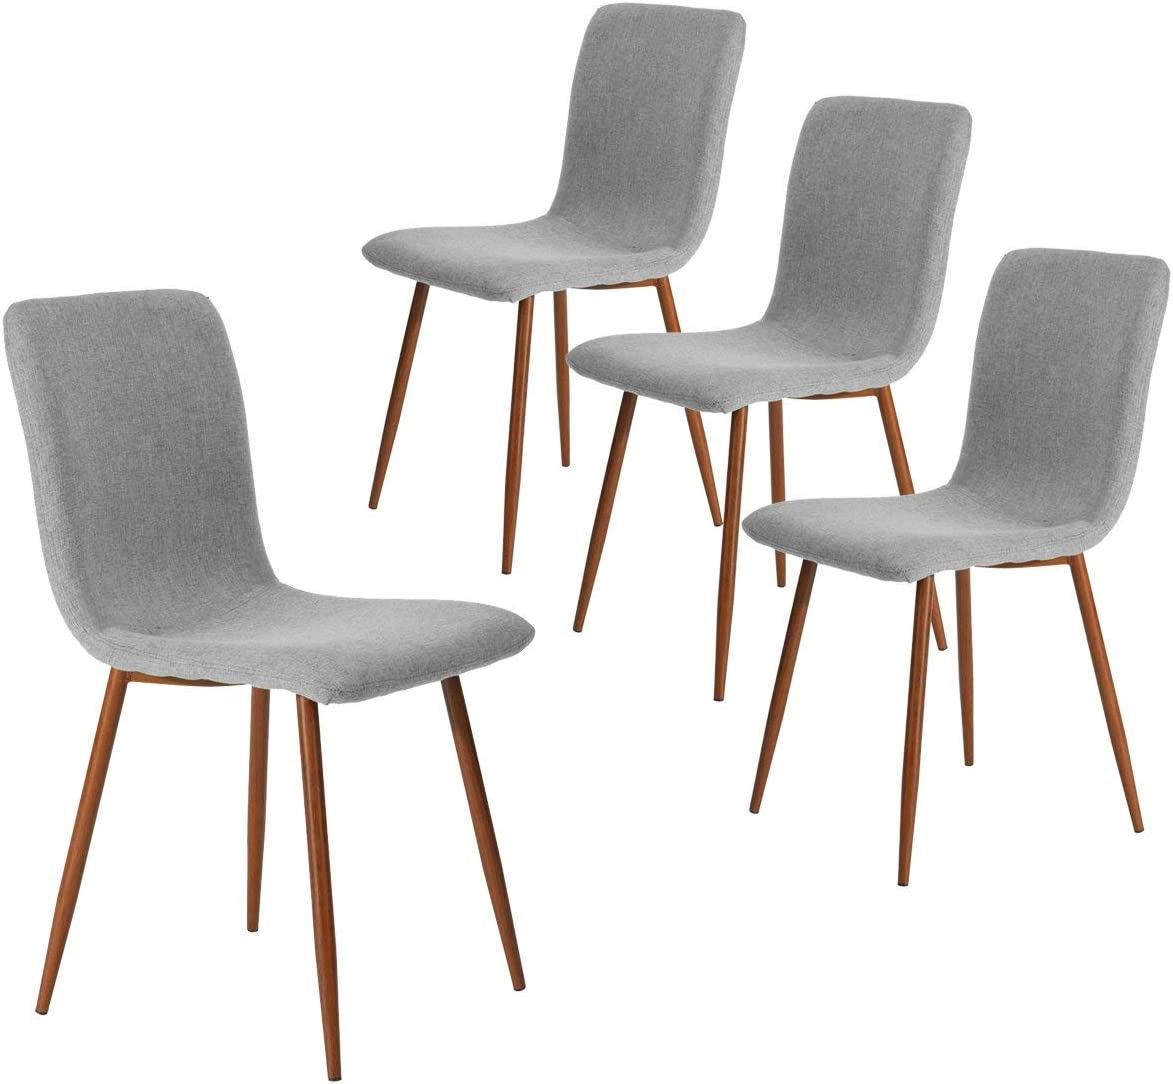 Amazon Com Dining Kitchen Chairs Set Of 4 Modern Dining Room Side Chairs With Fabric Cushion Seat Back Mid Century Living Room Chairs With Brown Metal Legs Gray Kitchen Dining